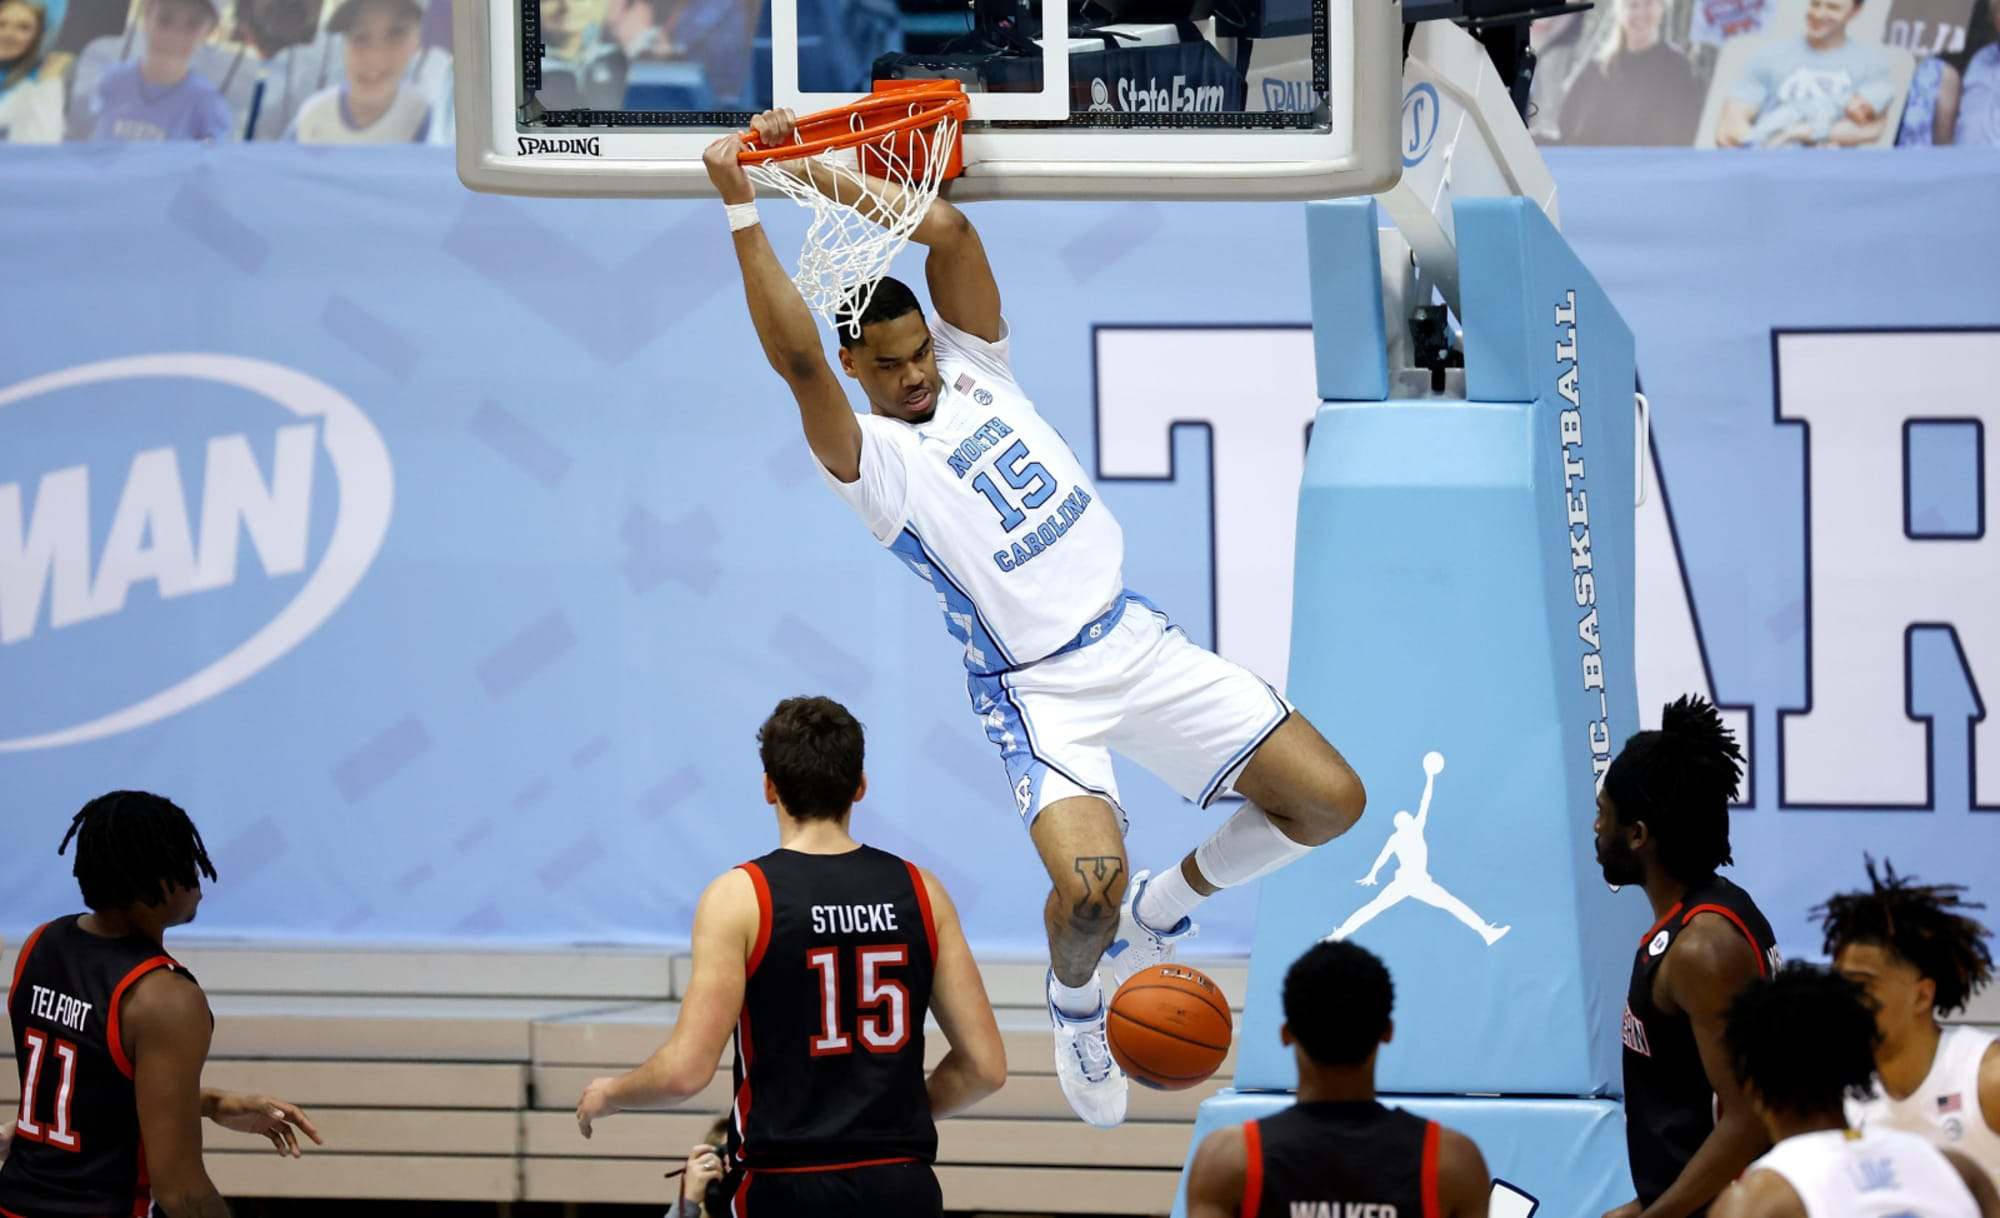 UNC Basketball jumps in latest NCAA NET rankings after Saturday's win